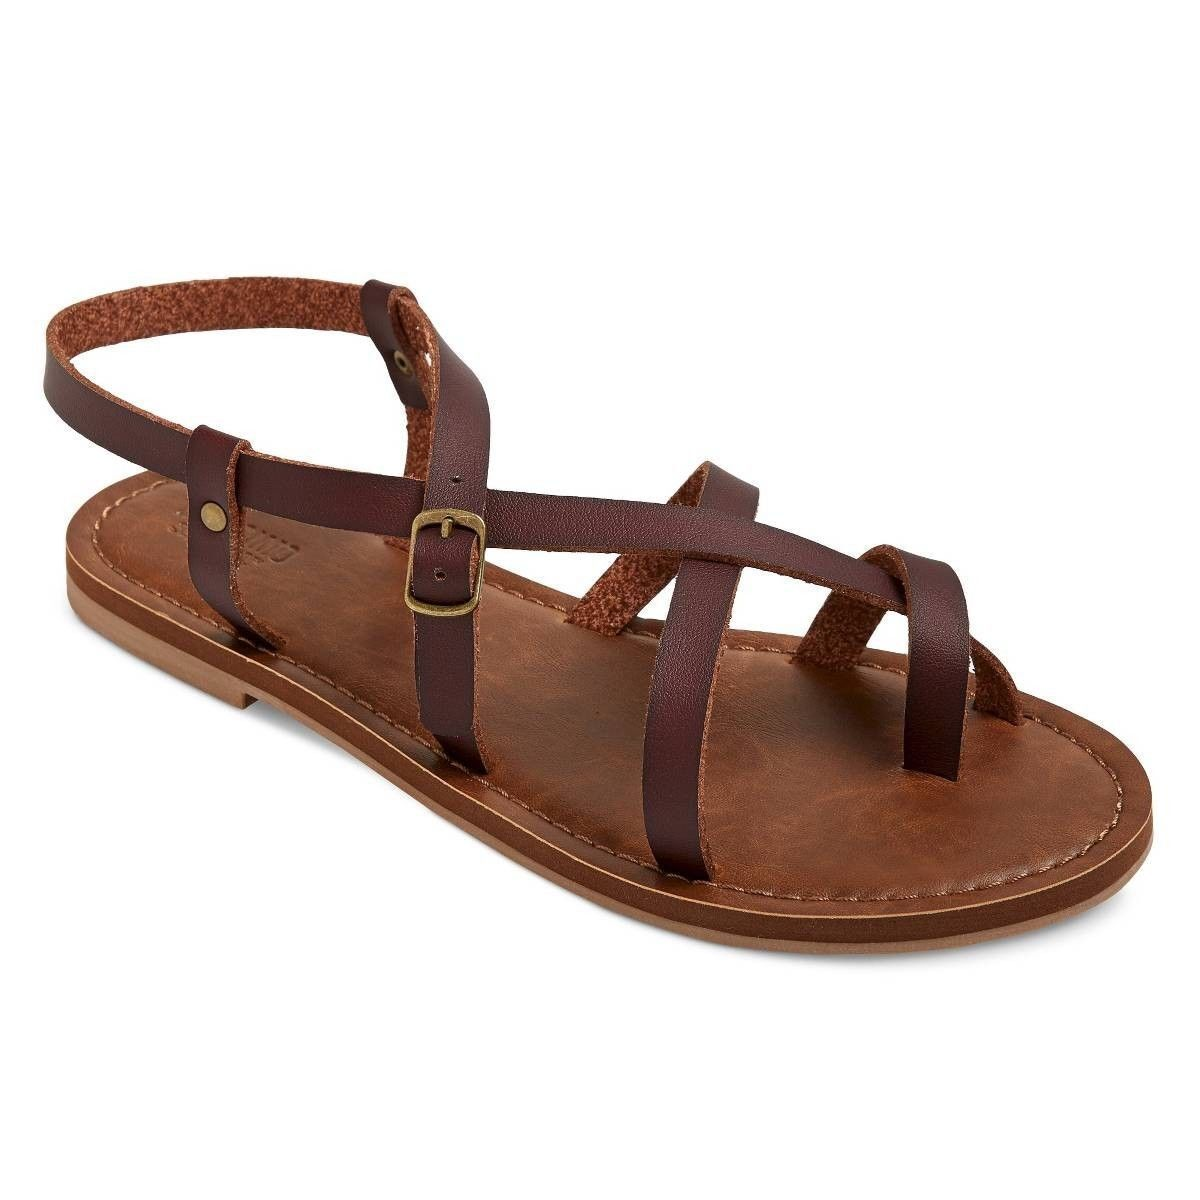 Brand Thong New Women's Lavinia Thong Brand Sandals Mossimo Supply Co.™ 837f63